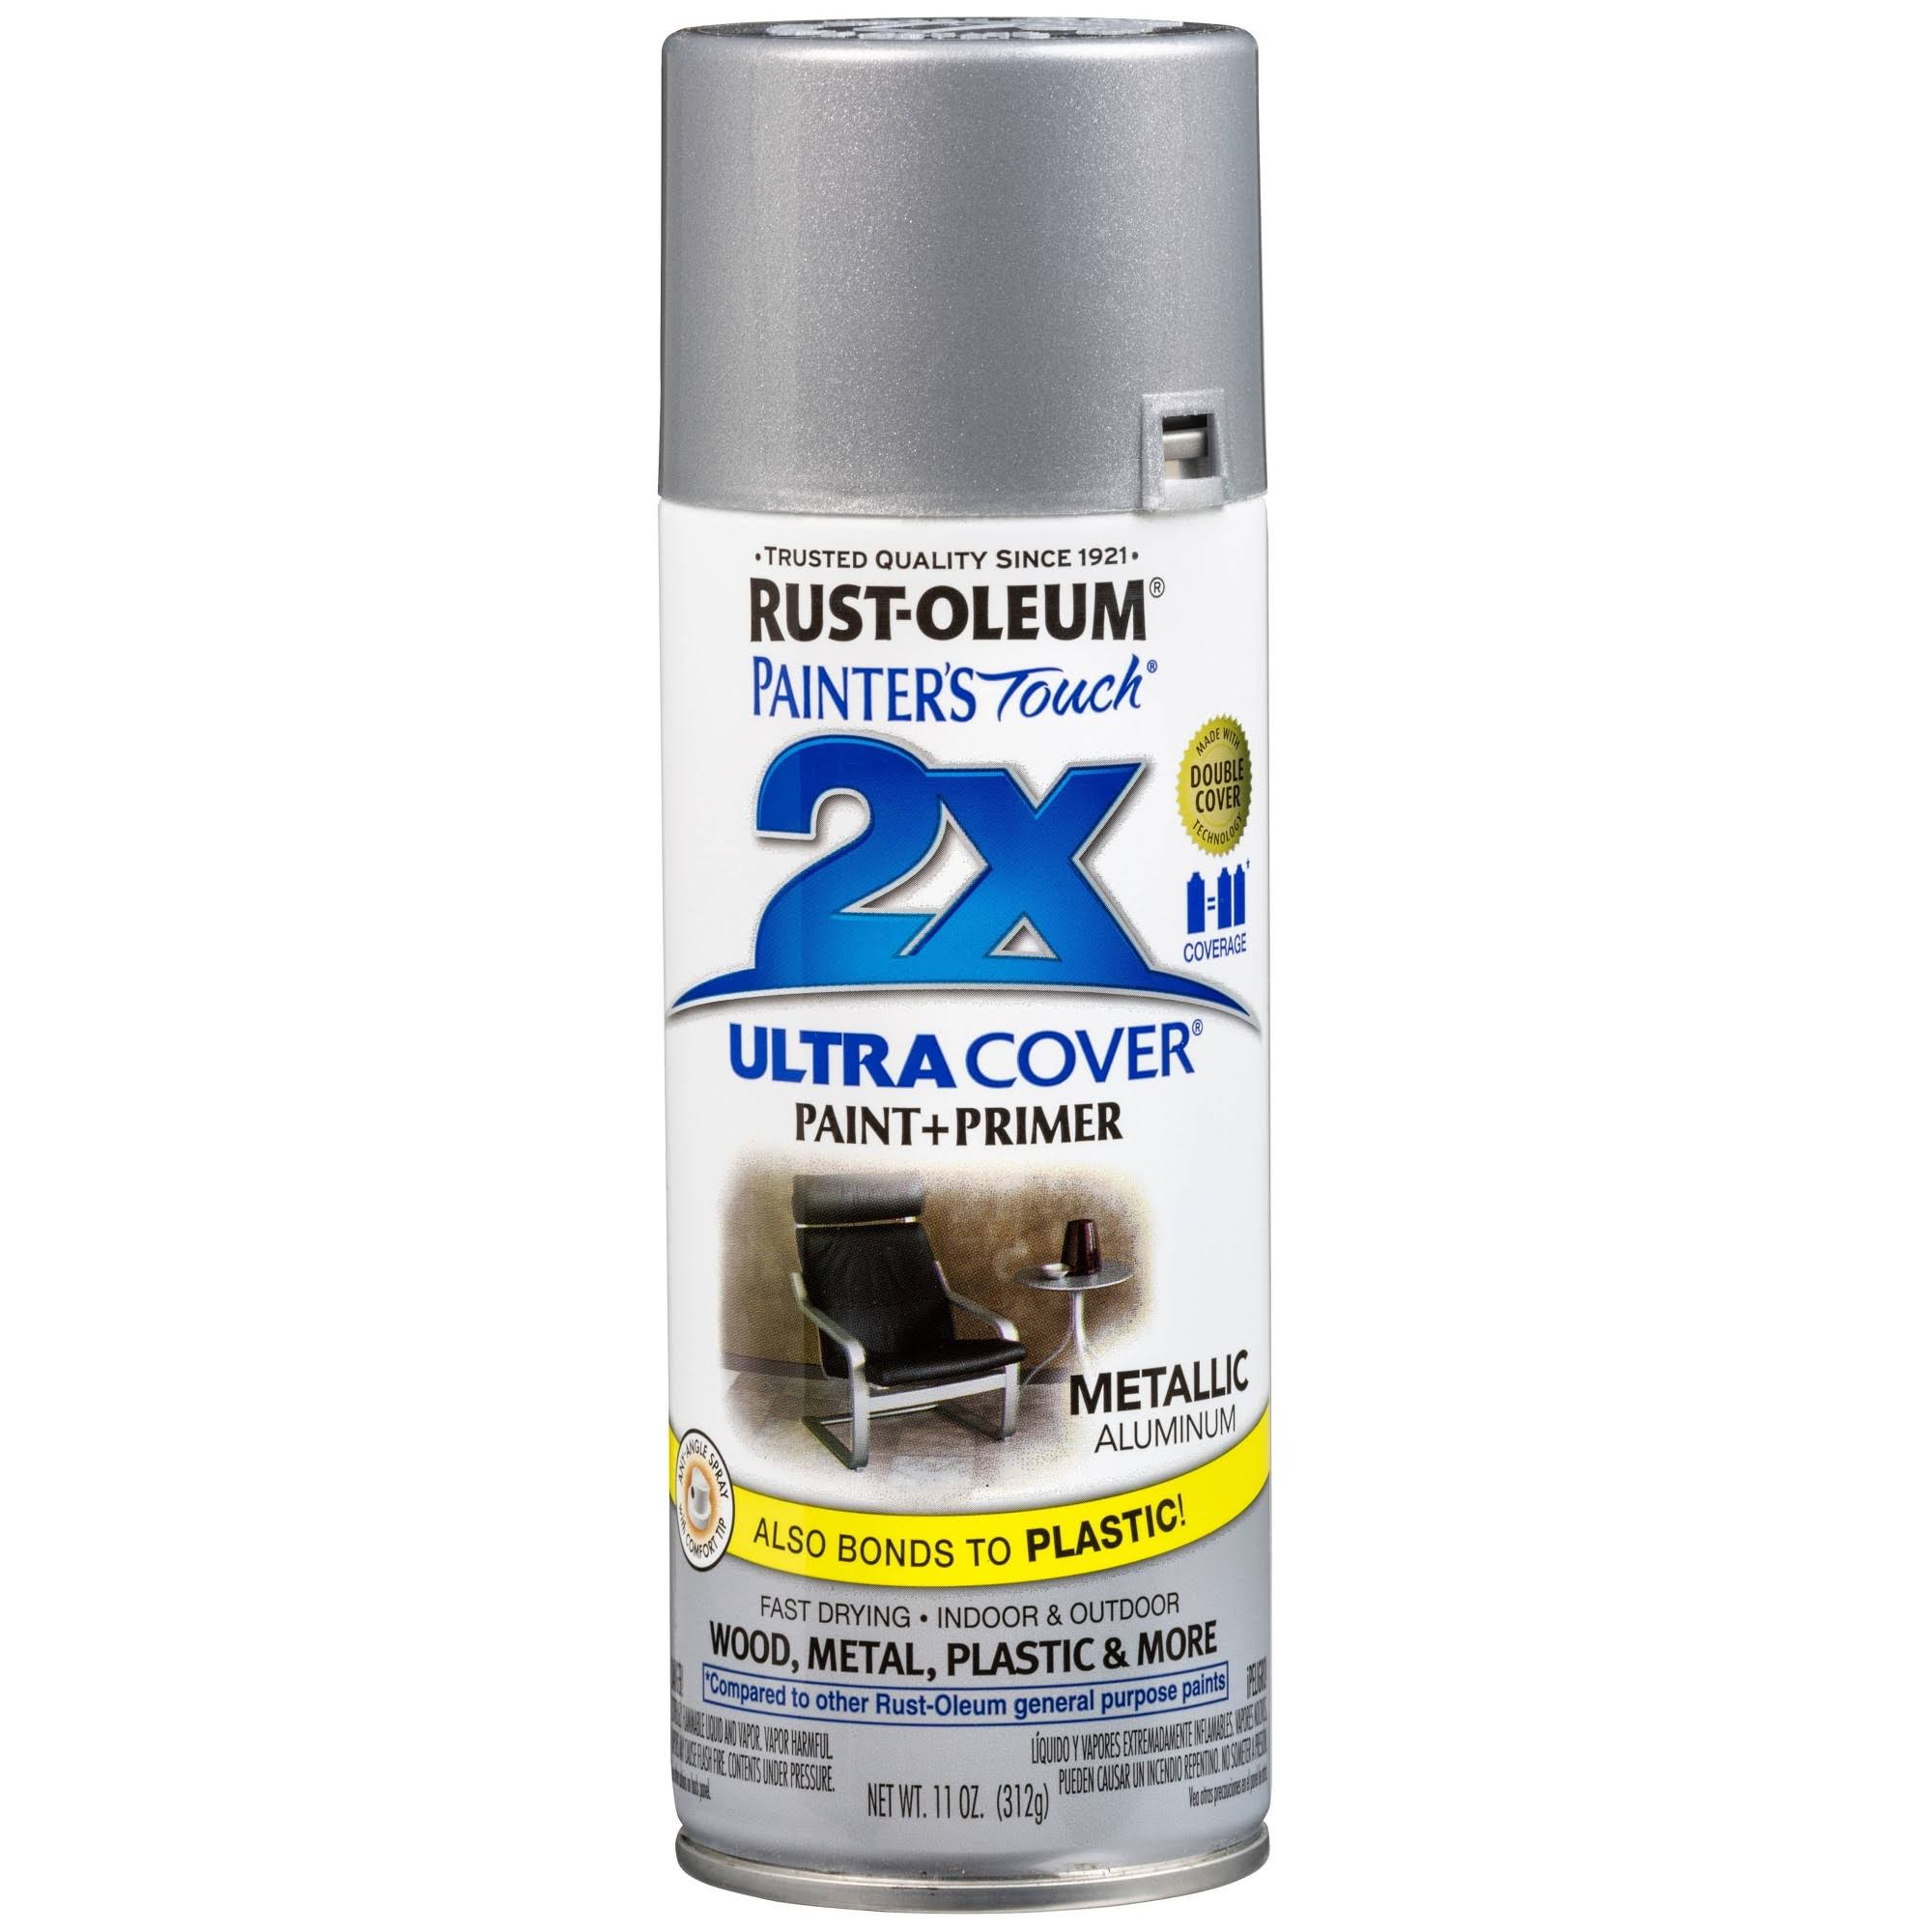 Rust-Oleum Painter's Touch Spray - Aluminum